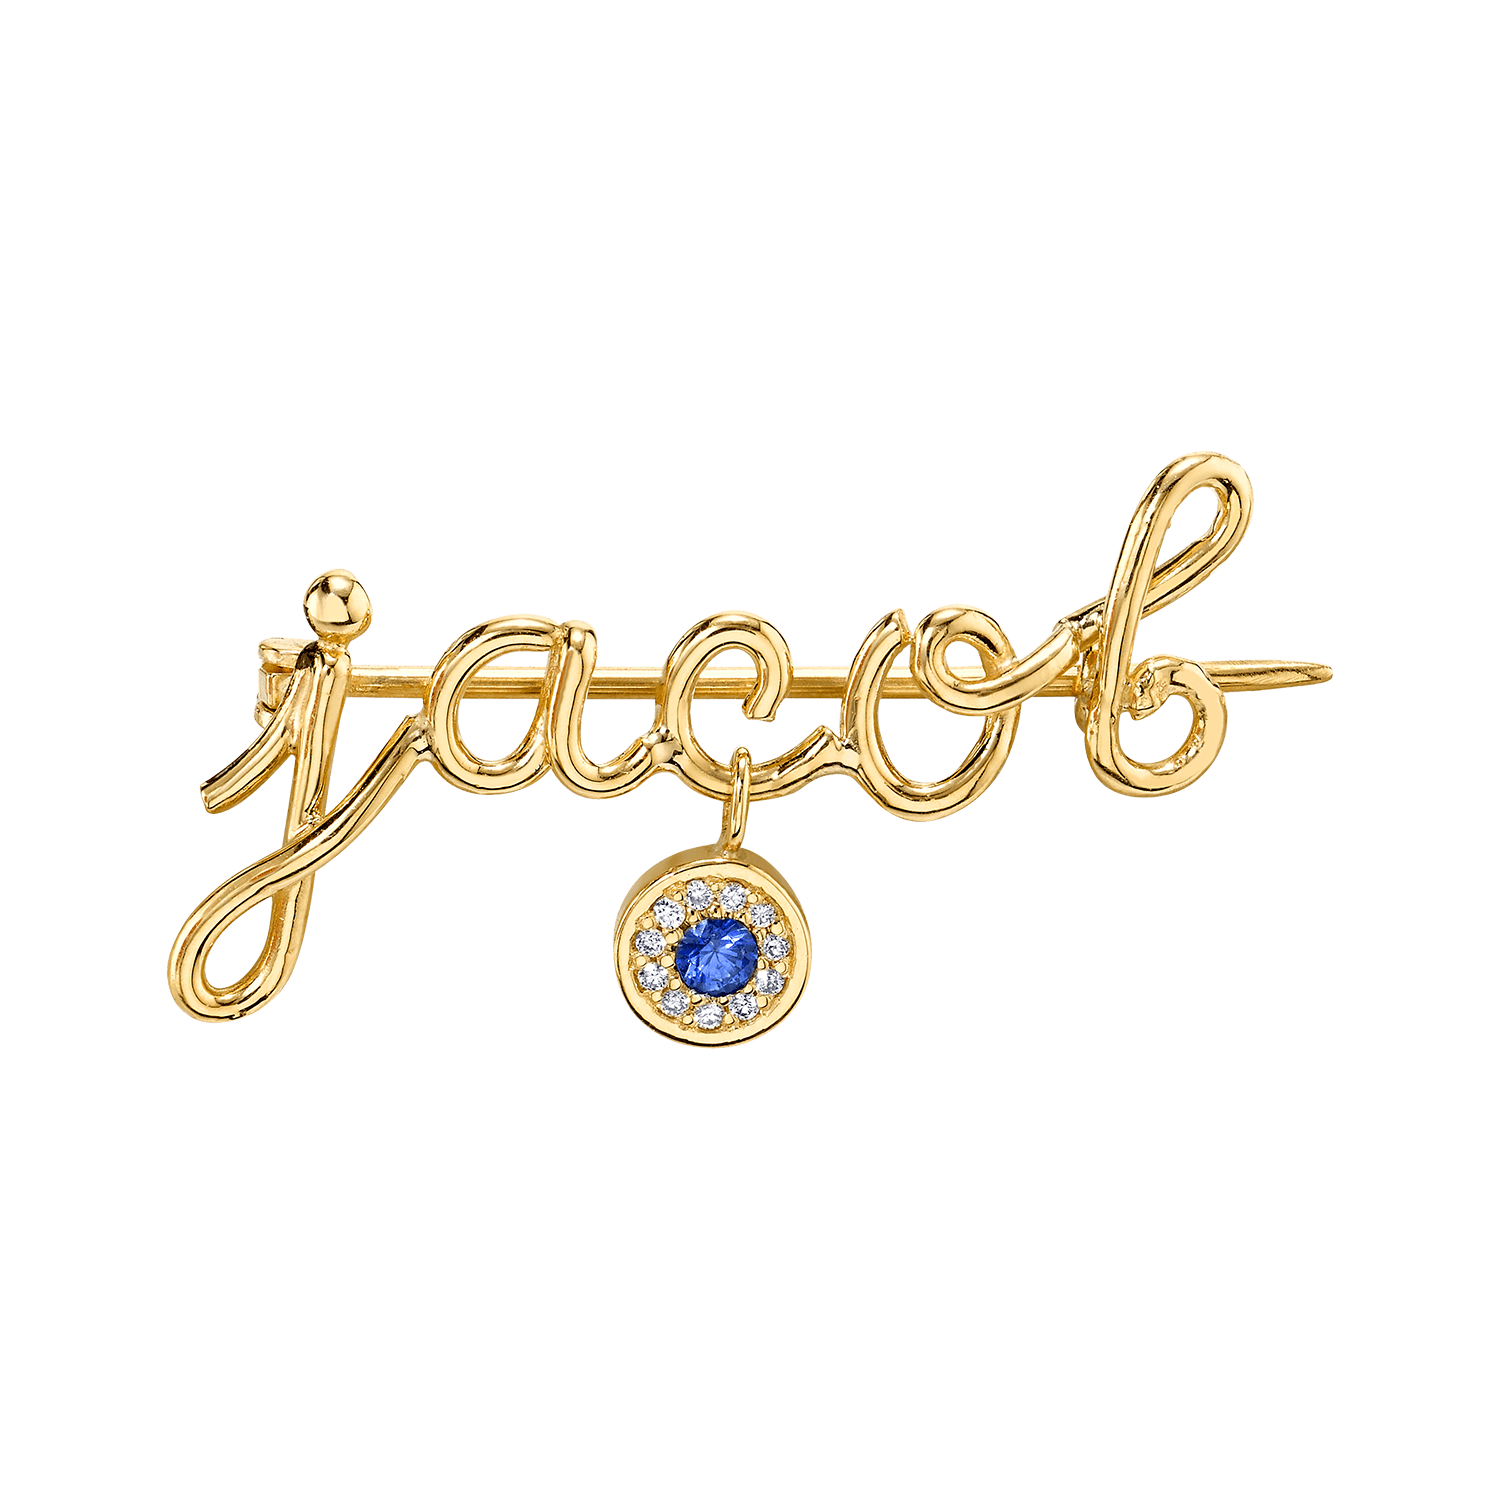 Mini Letter Name Pin with Round Eye Charm